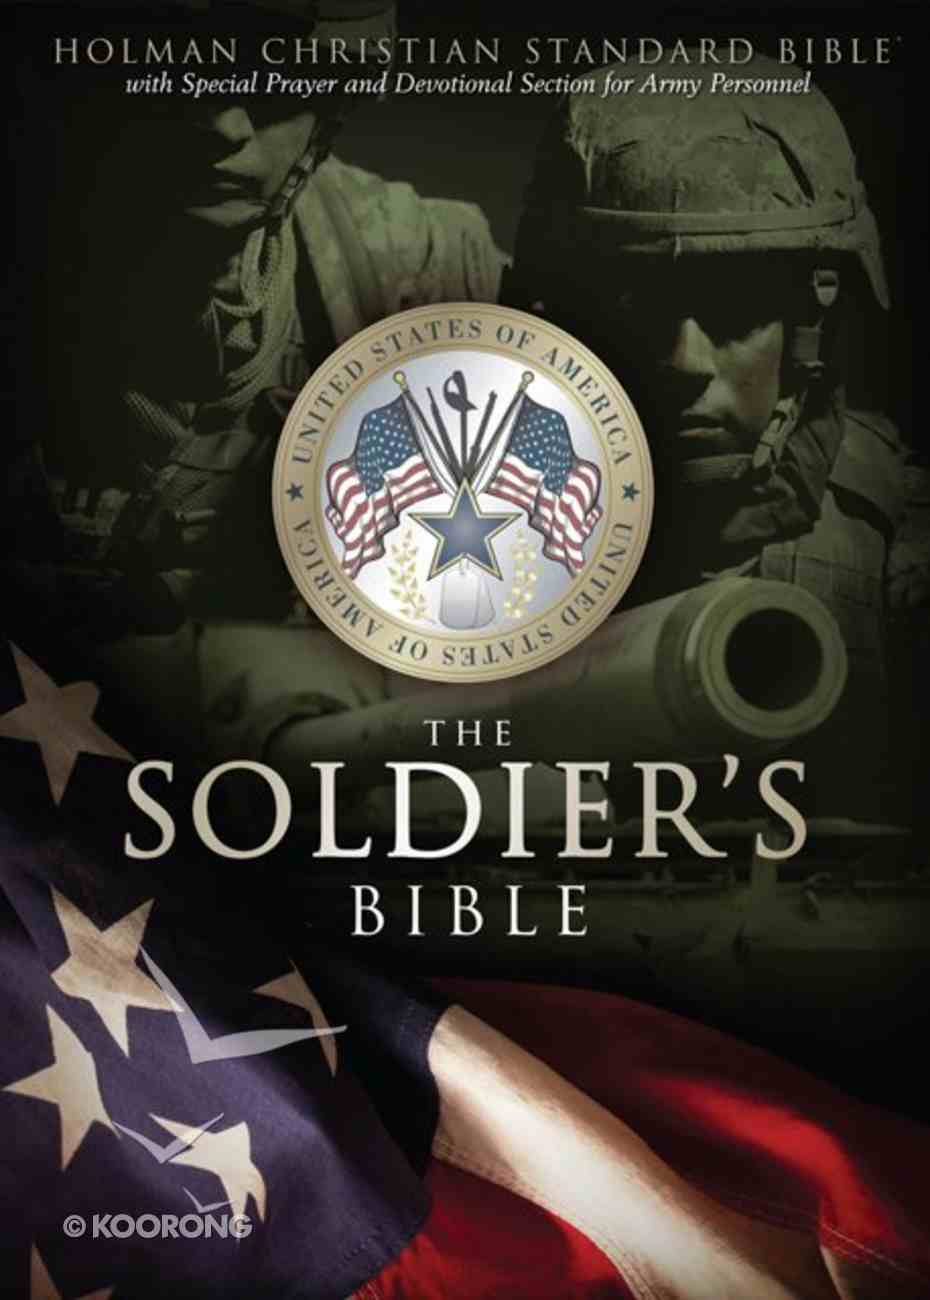 HCSB Soldier's Bible Green Imitation Leather